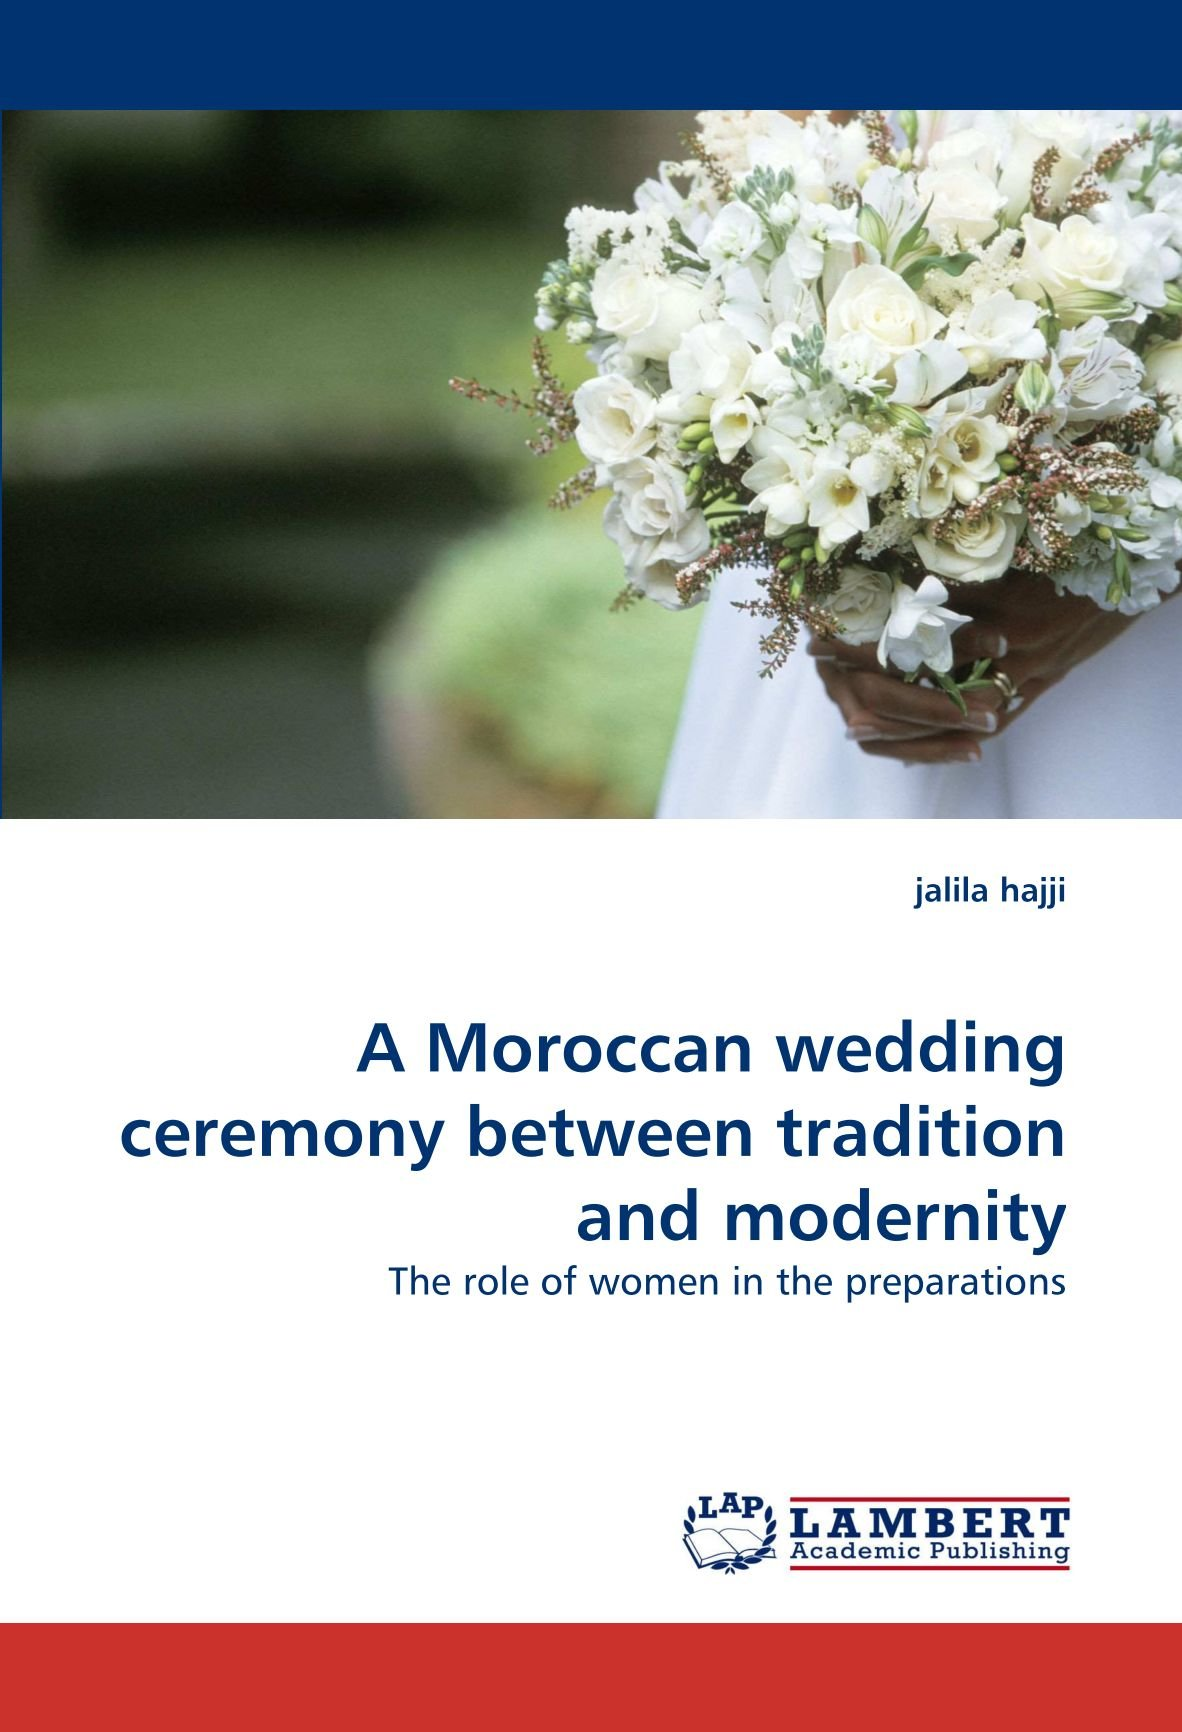 A Moroccan wedding ceremony between tradition and modernity: The role of women in the preparations